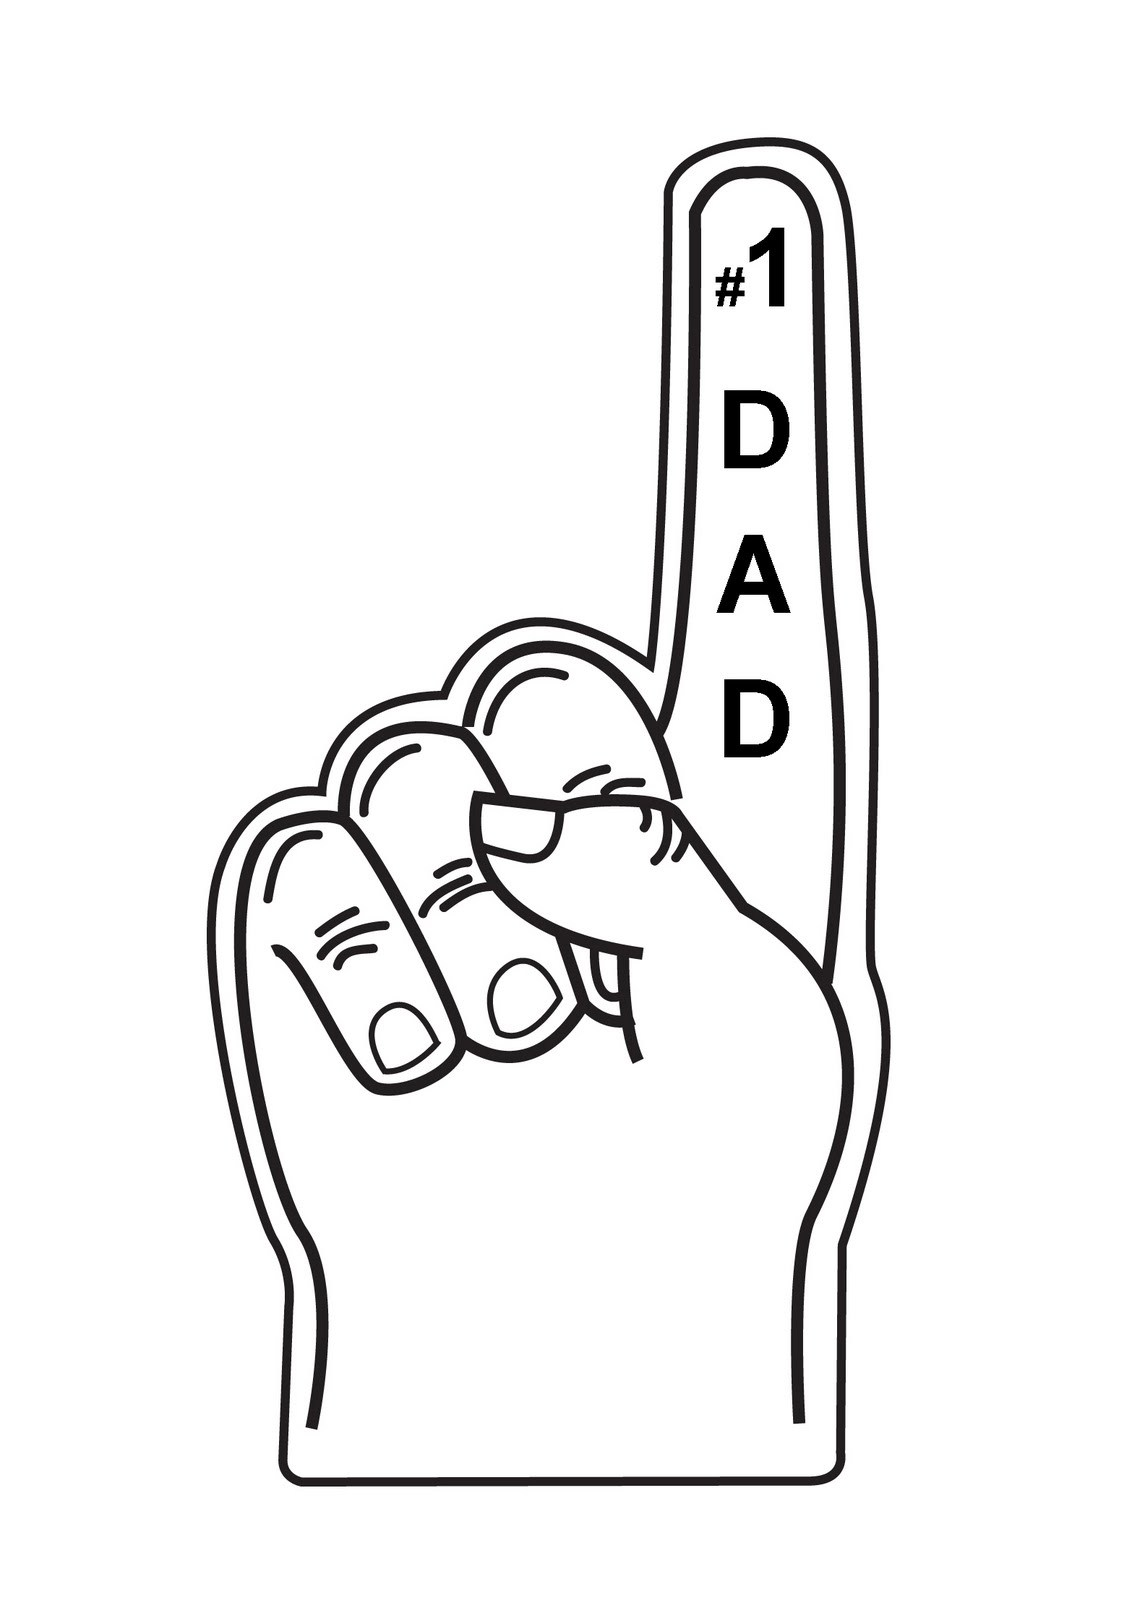 Number 1 dad clipart.